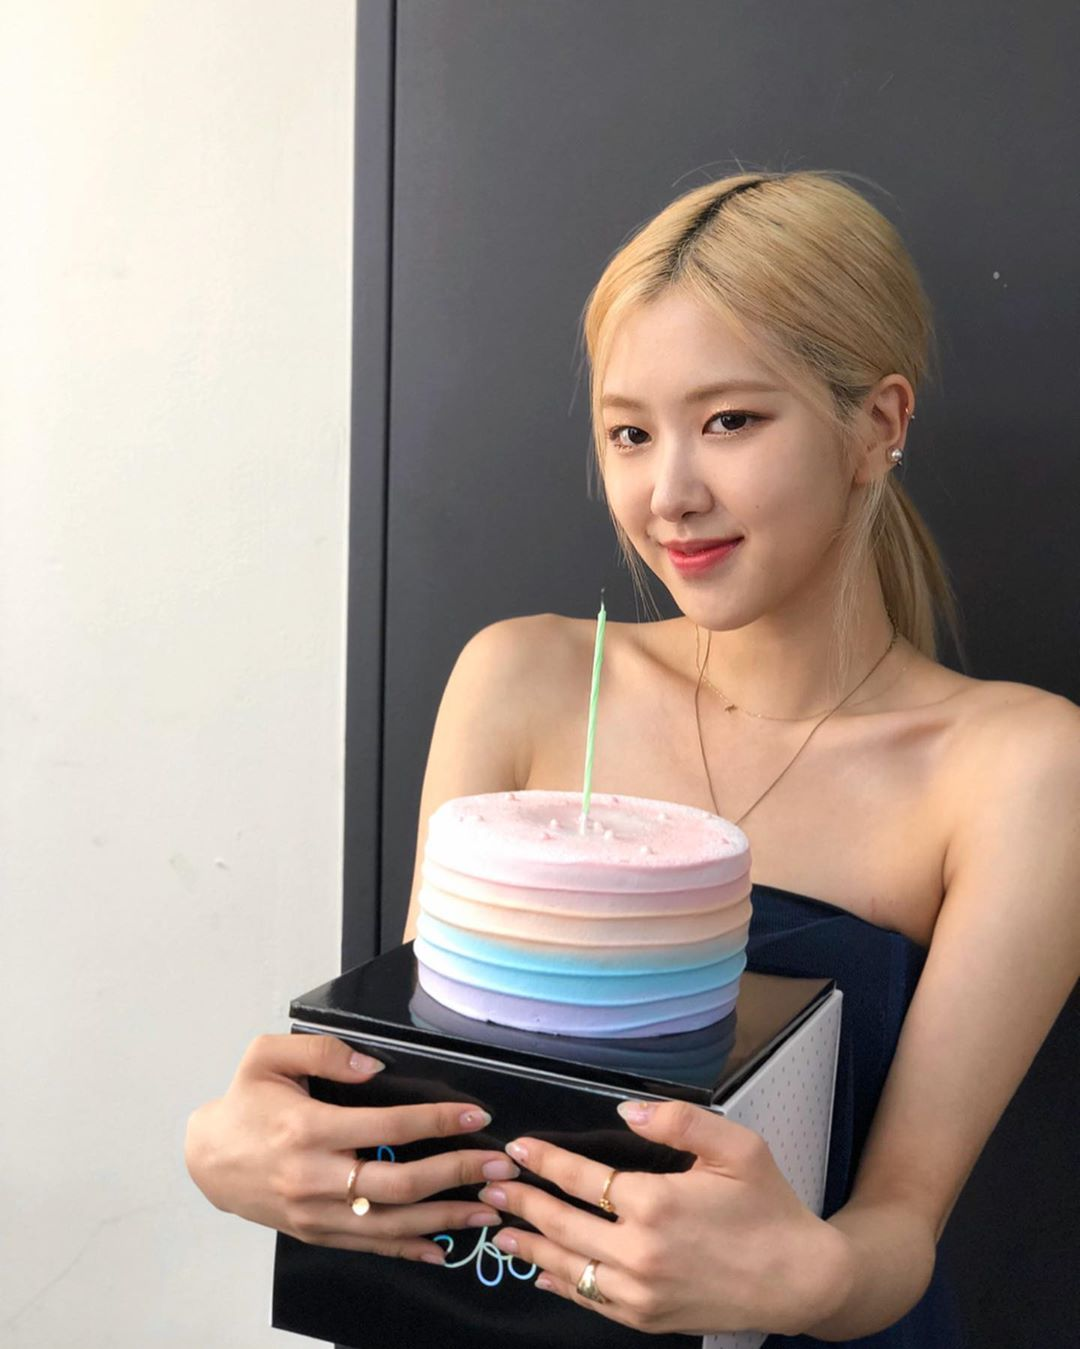 Awesome Blackpink Members Birthday Date 2020 wallpapers to download for free greenvirals